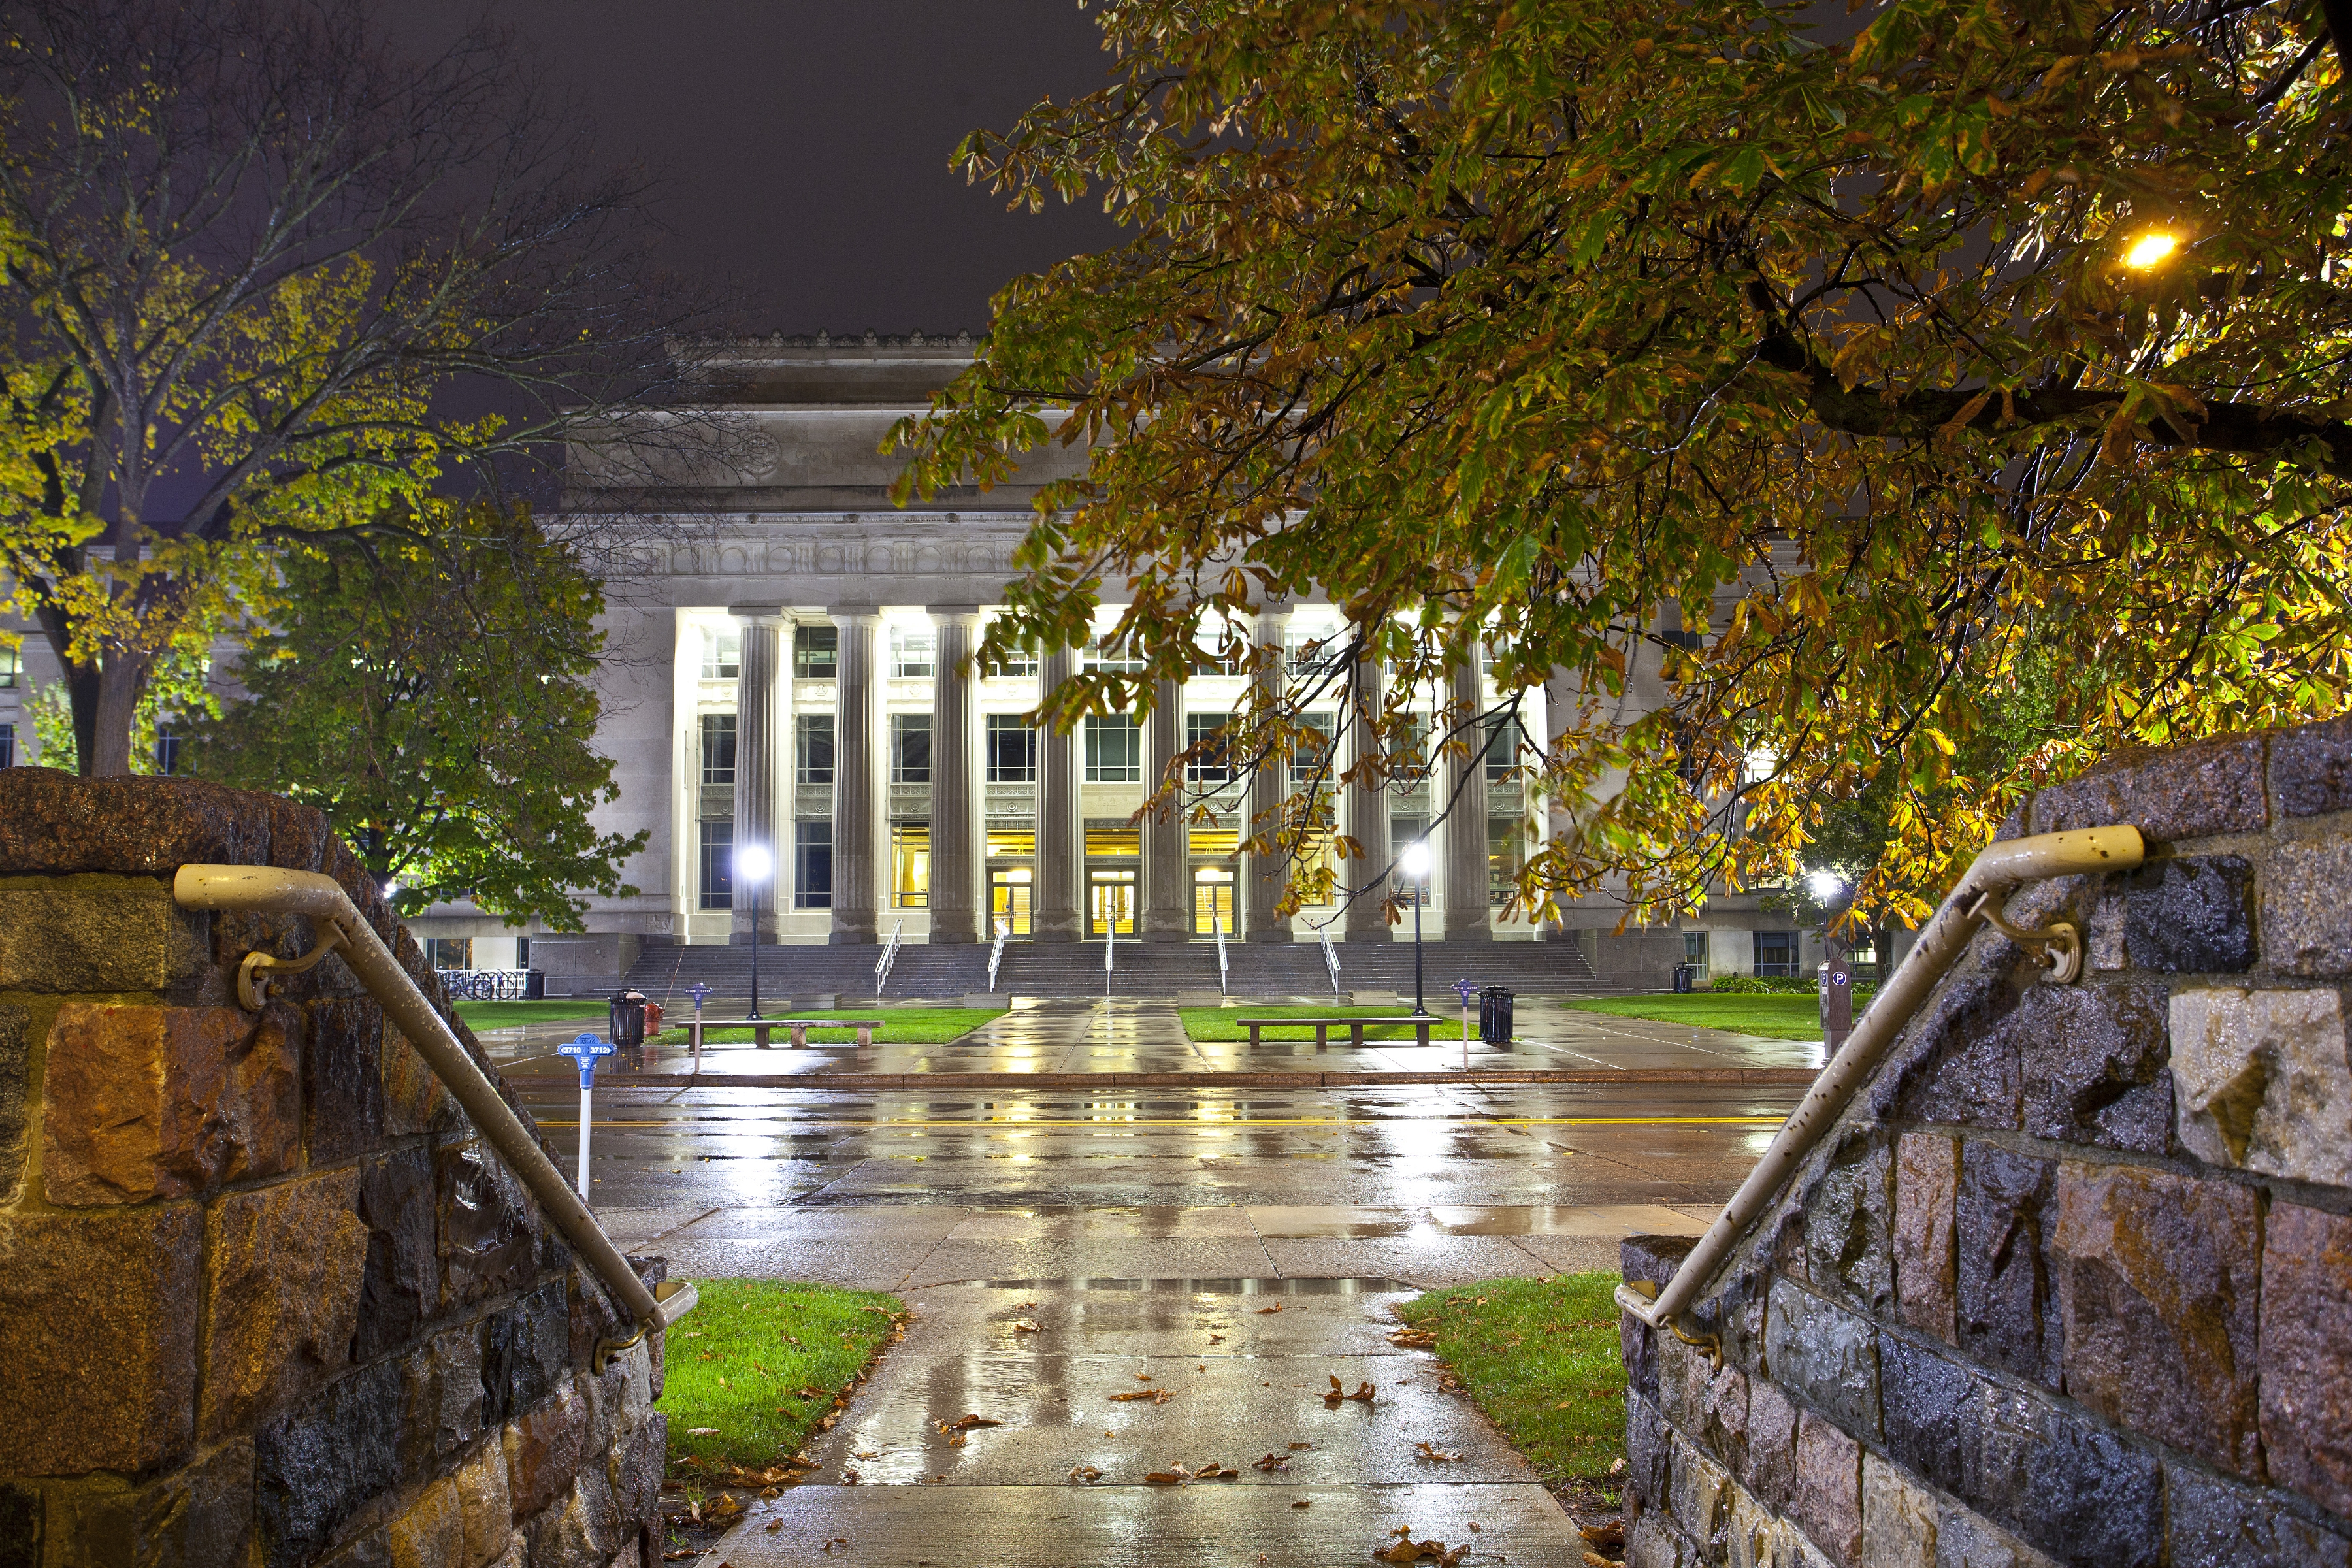 Angell Hall at night after a rainfall